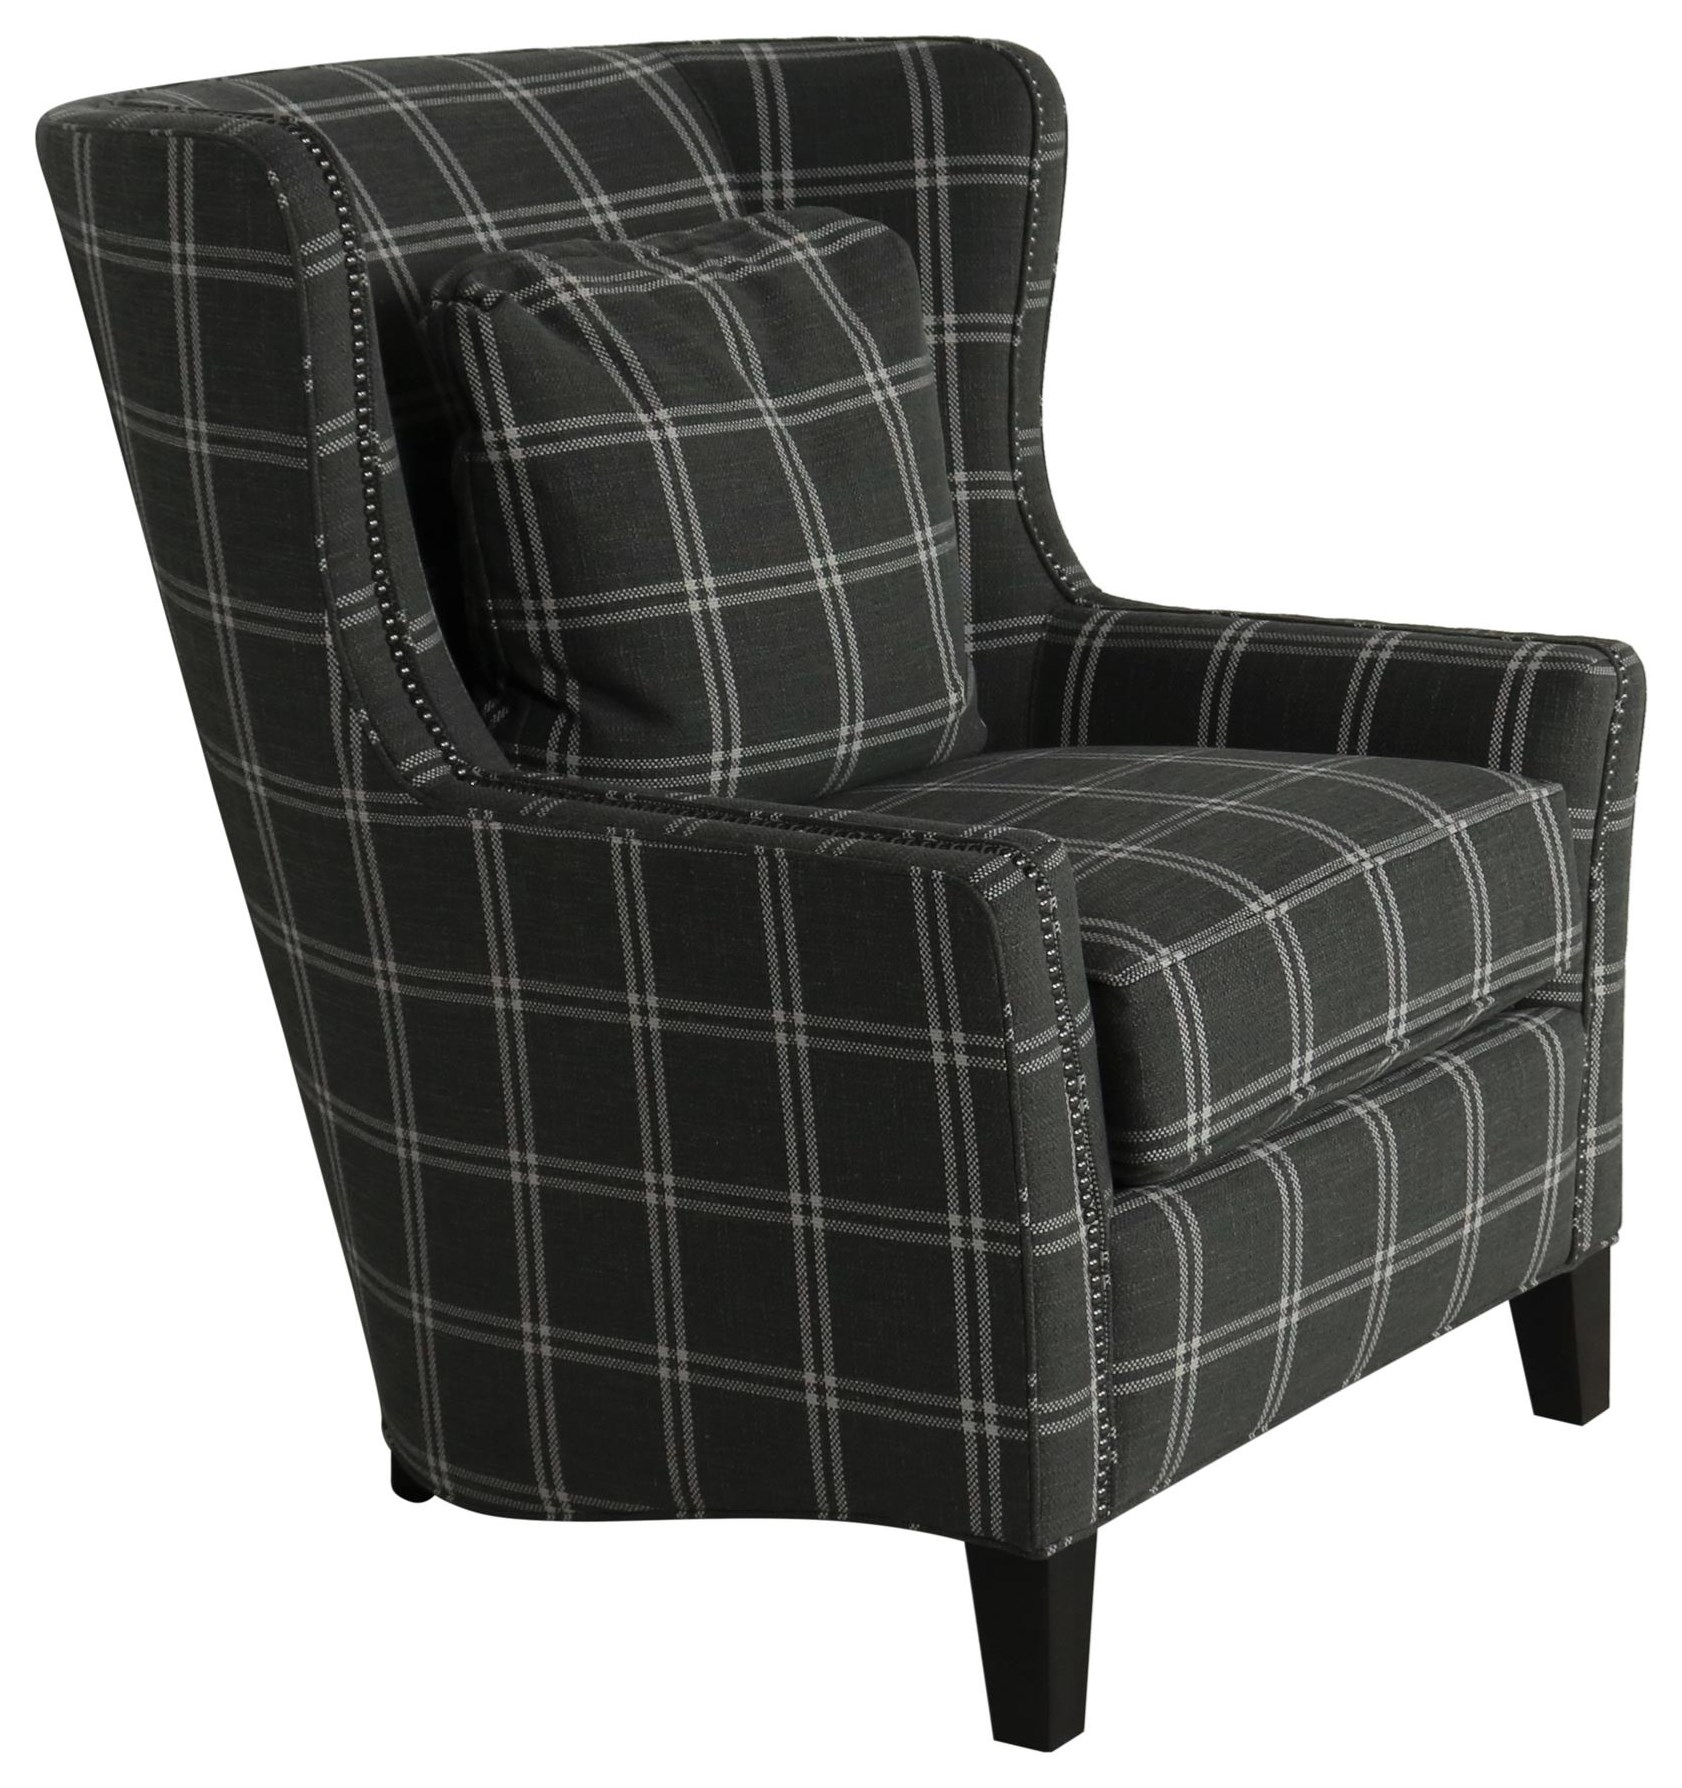 Accent Chairs and Ottomans SB Upholstered Wingback Chair by Smith Brothers at Sprintz Furniture